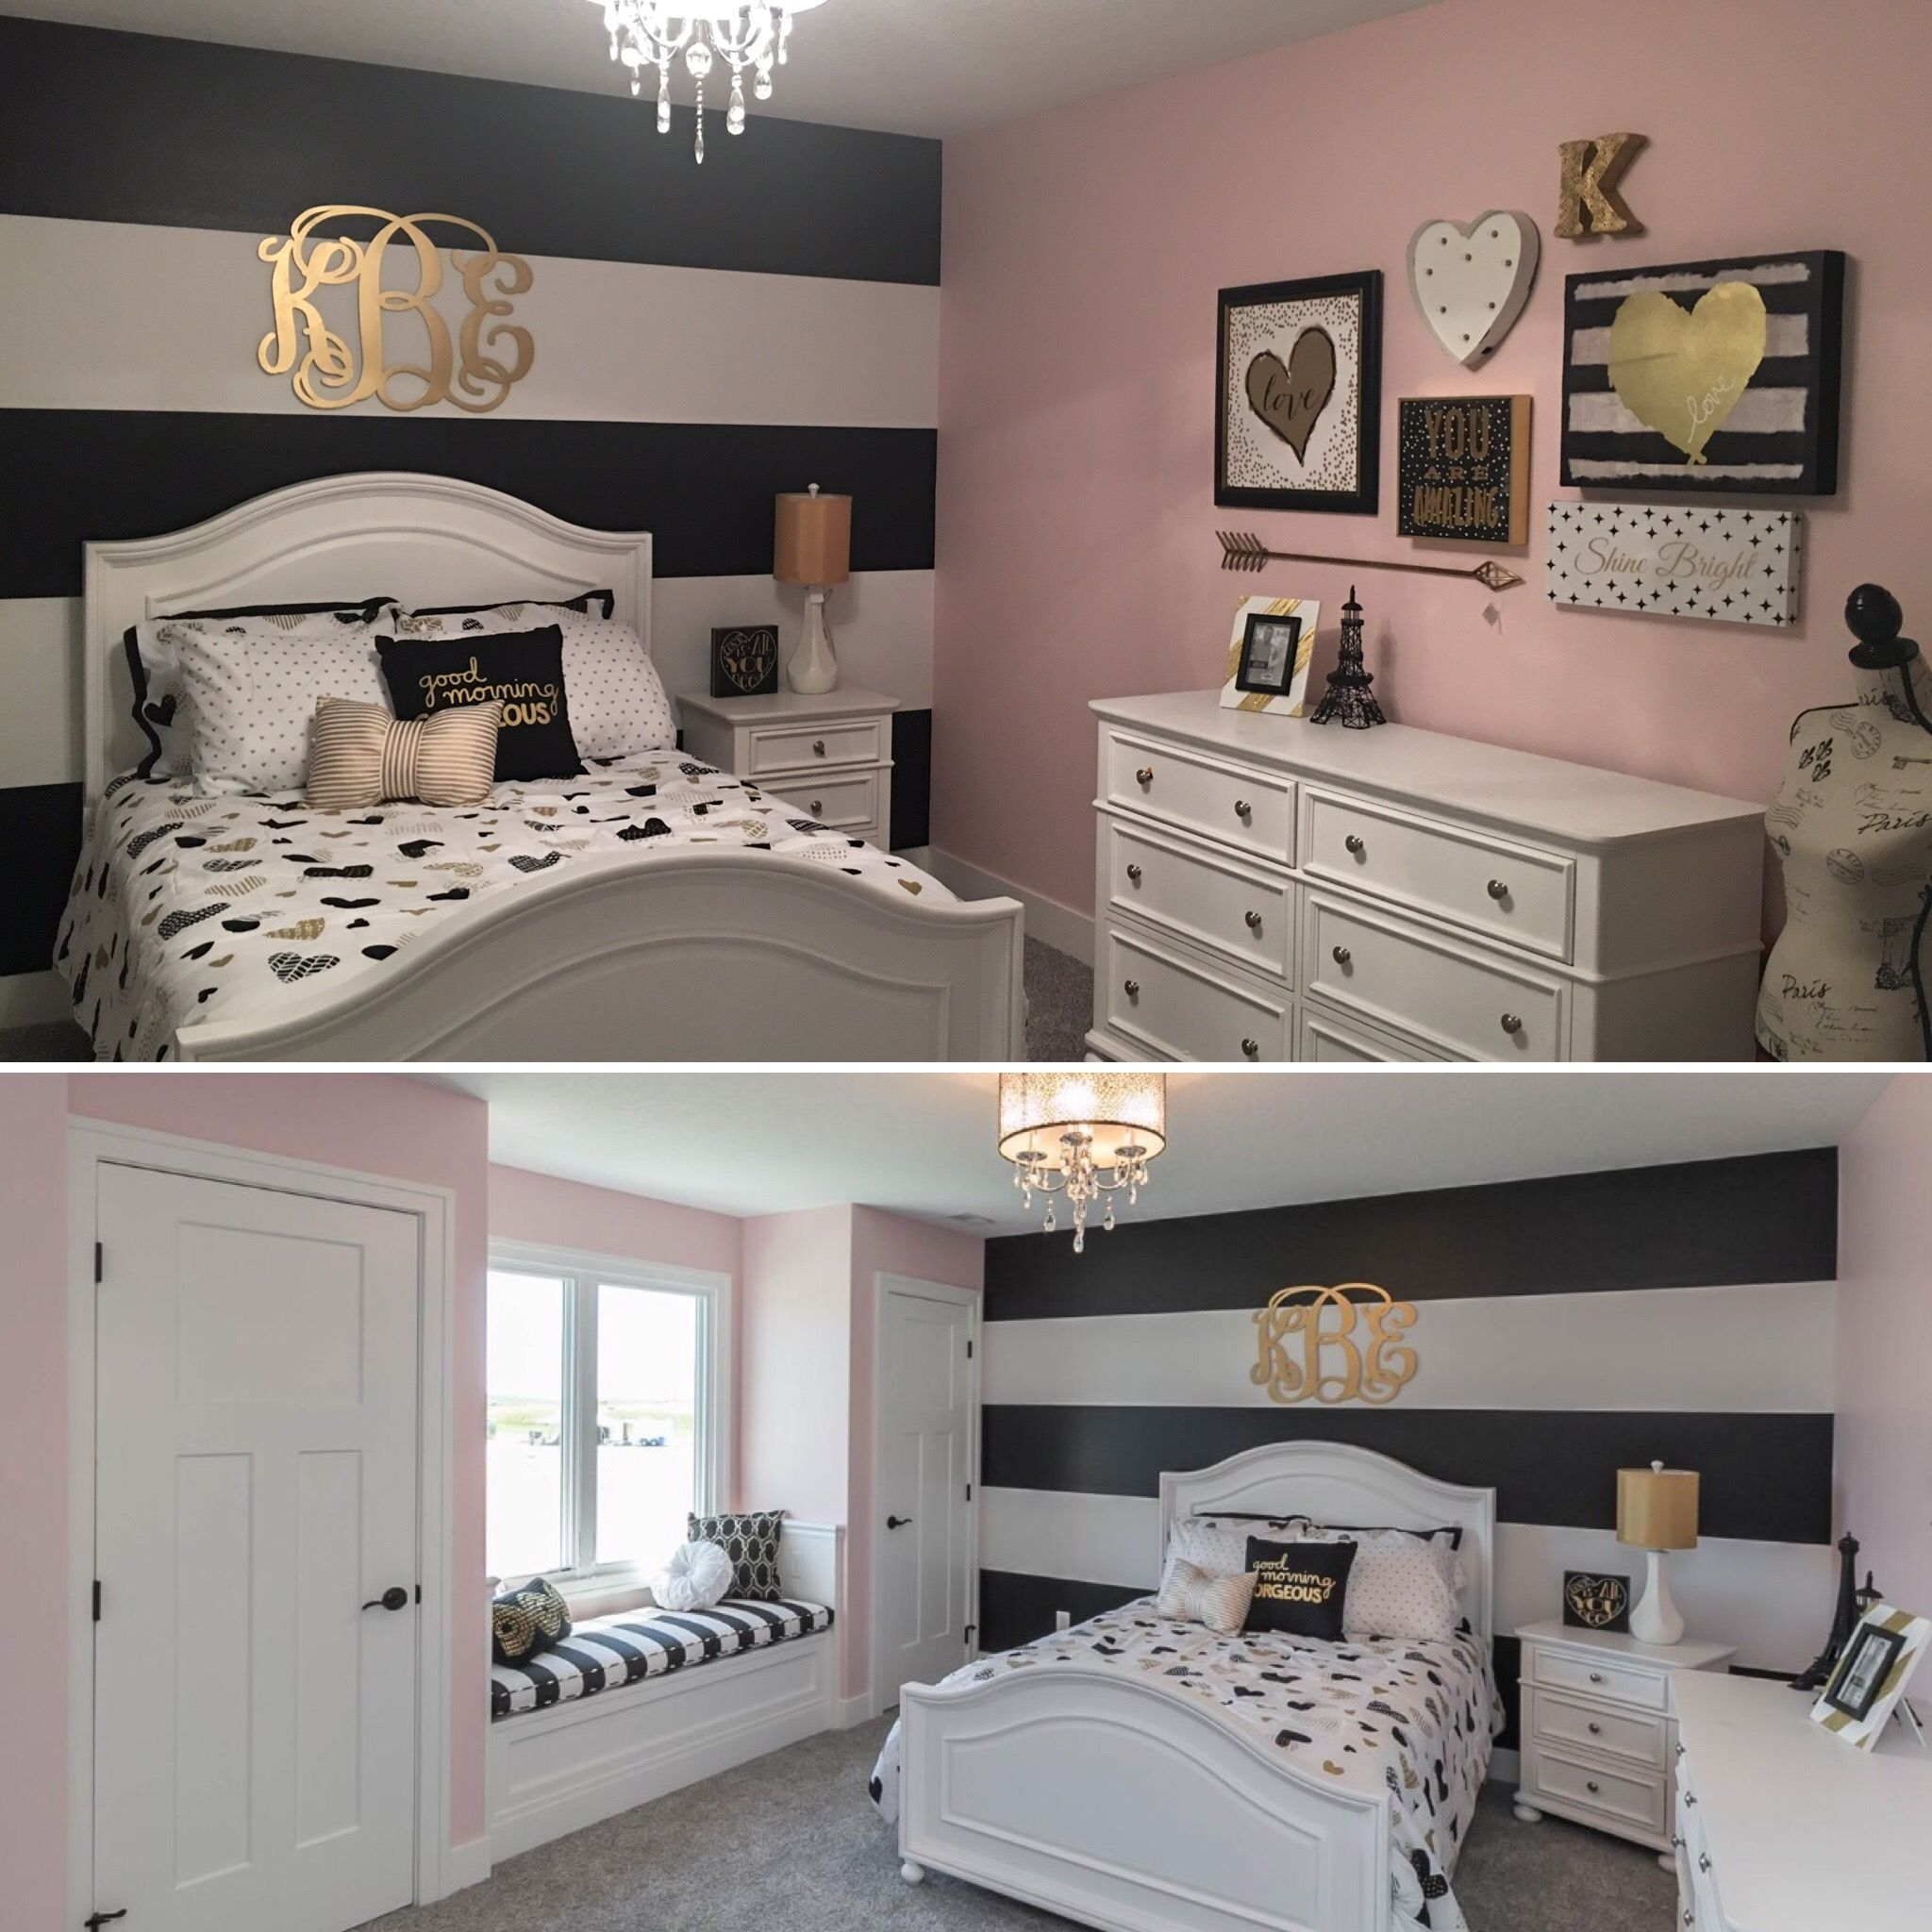 S Room With Black And Gold Accents All Very Affordable Most Of The Decor Was Bought At Hobby Lobby Home Bedding Is From Target